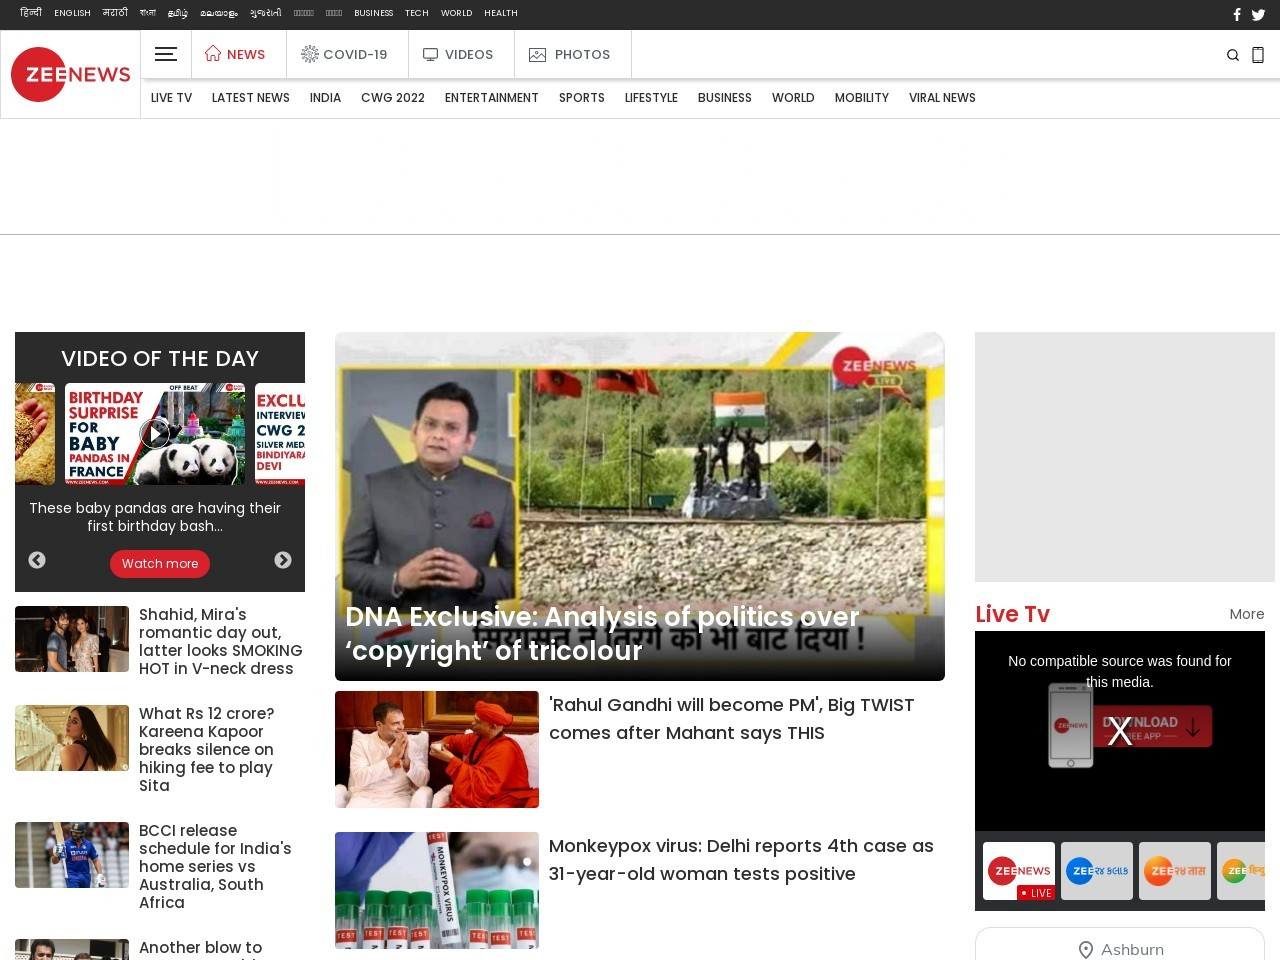 Virat Kohli's two incredible sixes against England – Which one is your favourite?